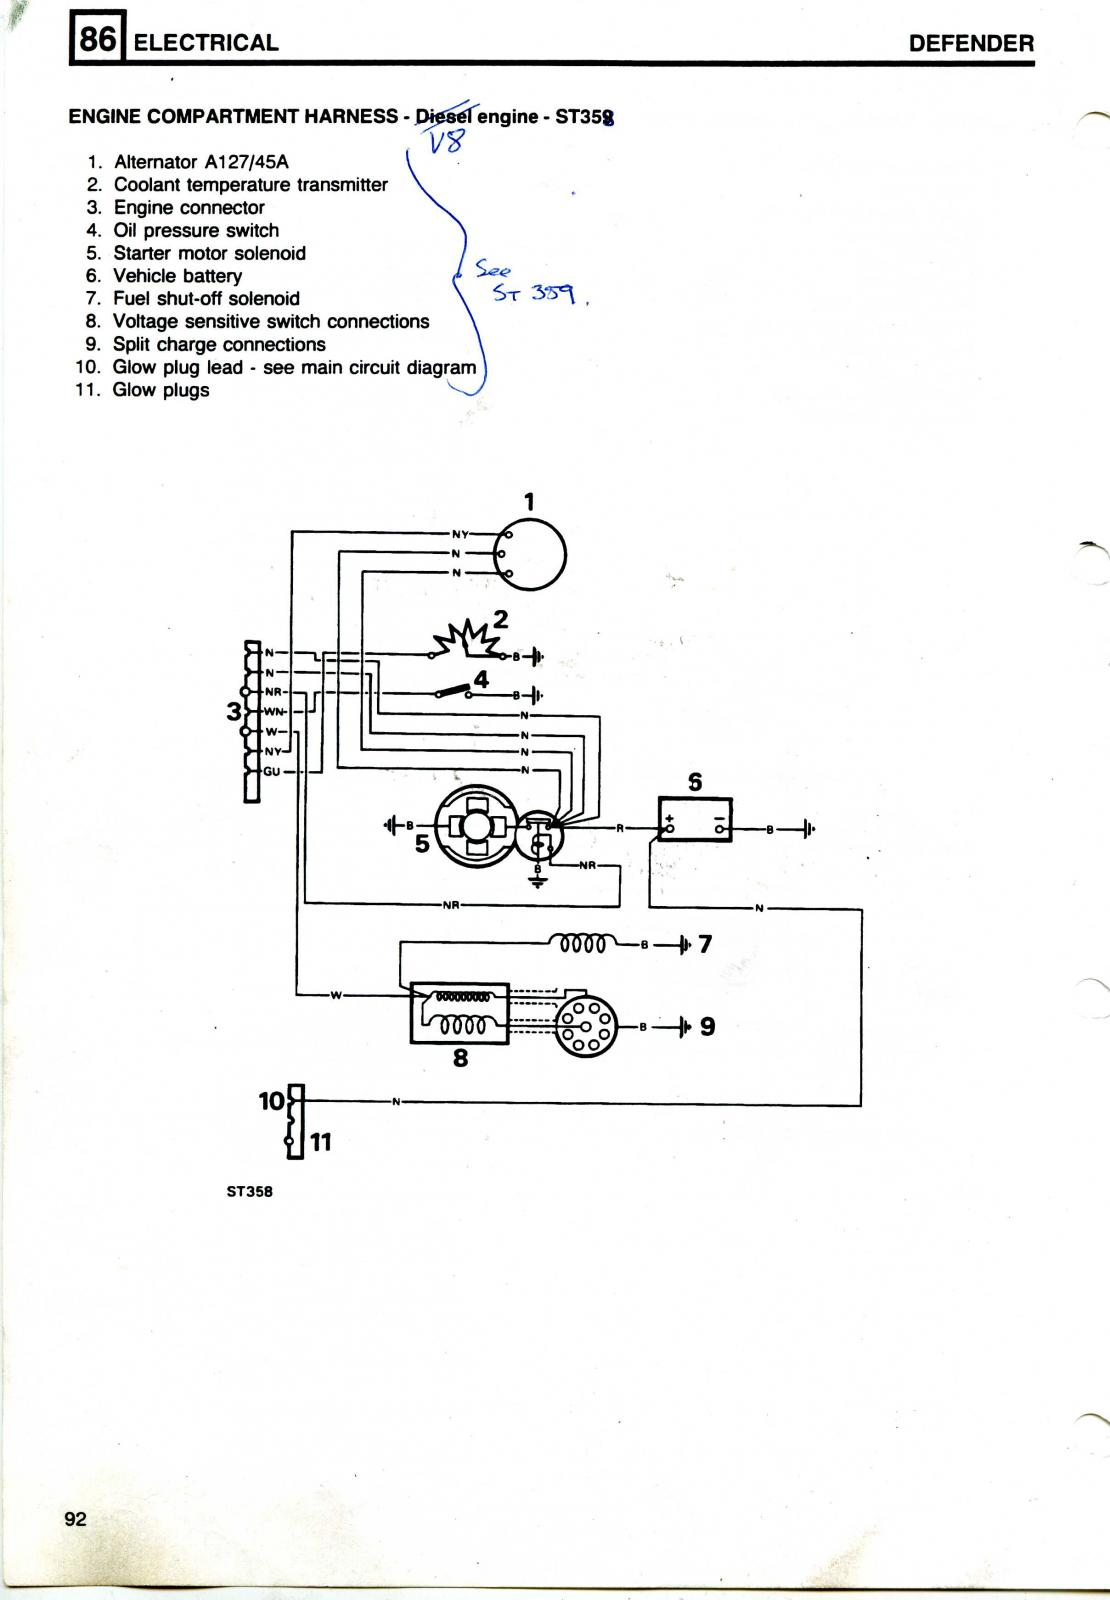 Land Rover 90 V8 Wiring Diagram Trusted Heated Windshield 3 5 Carb Needed Defender Forum Rh Forums Lr4x4 Com